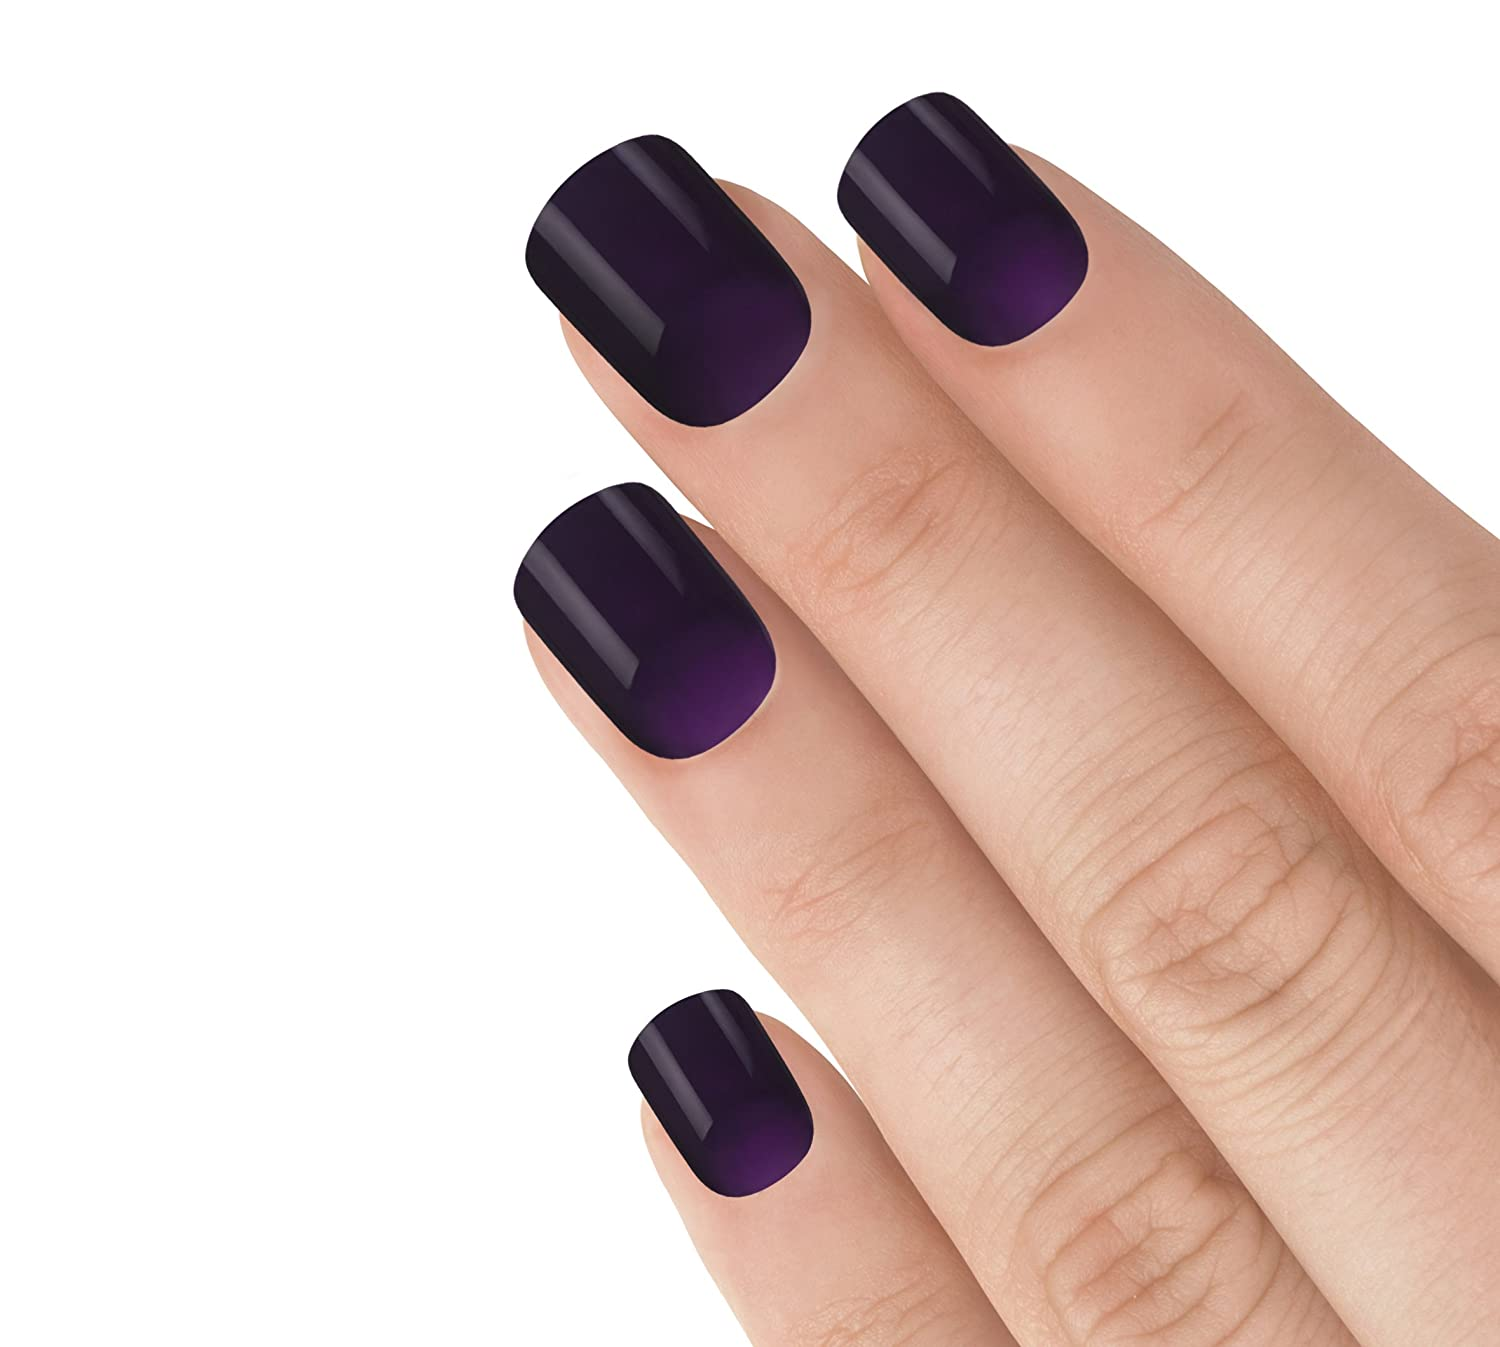 Elegant Touch Express - Manicura en 3 minutos, uñas postizas, color morado: Amazon.es: Belleza